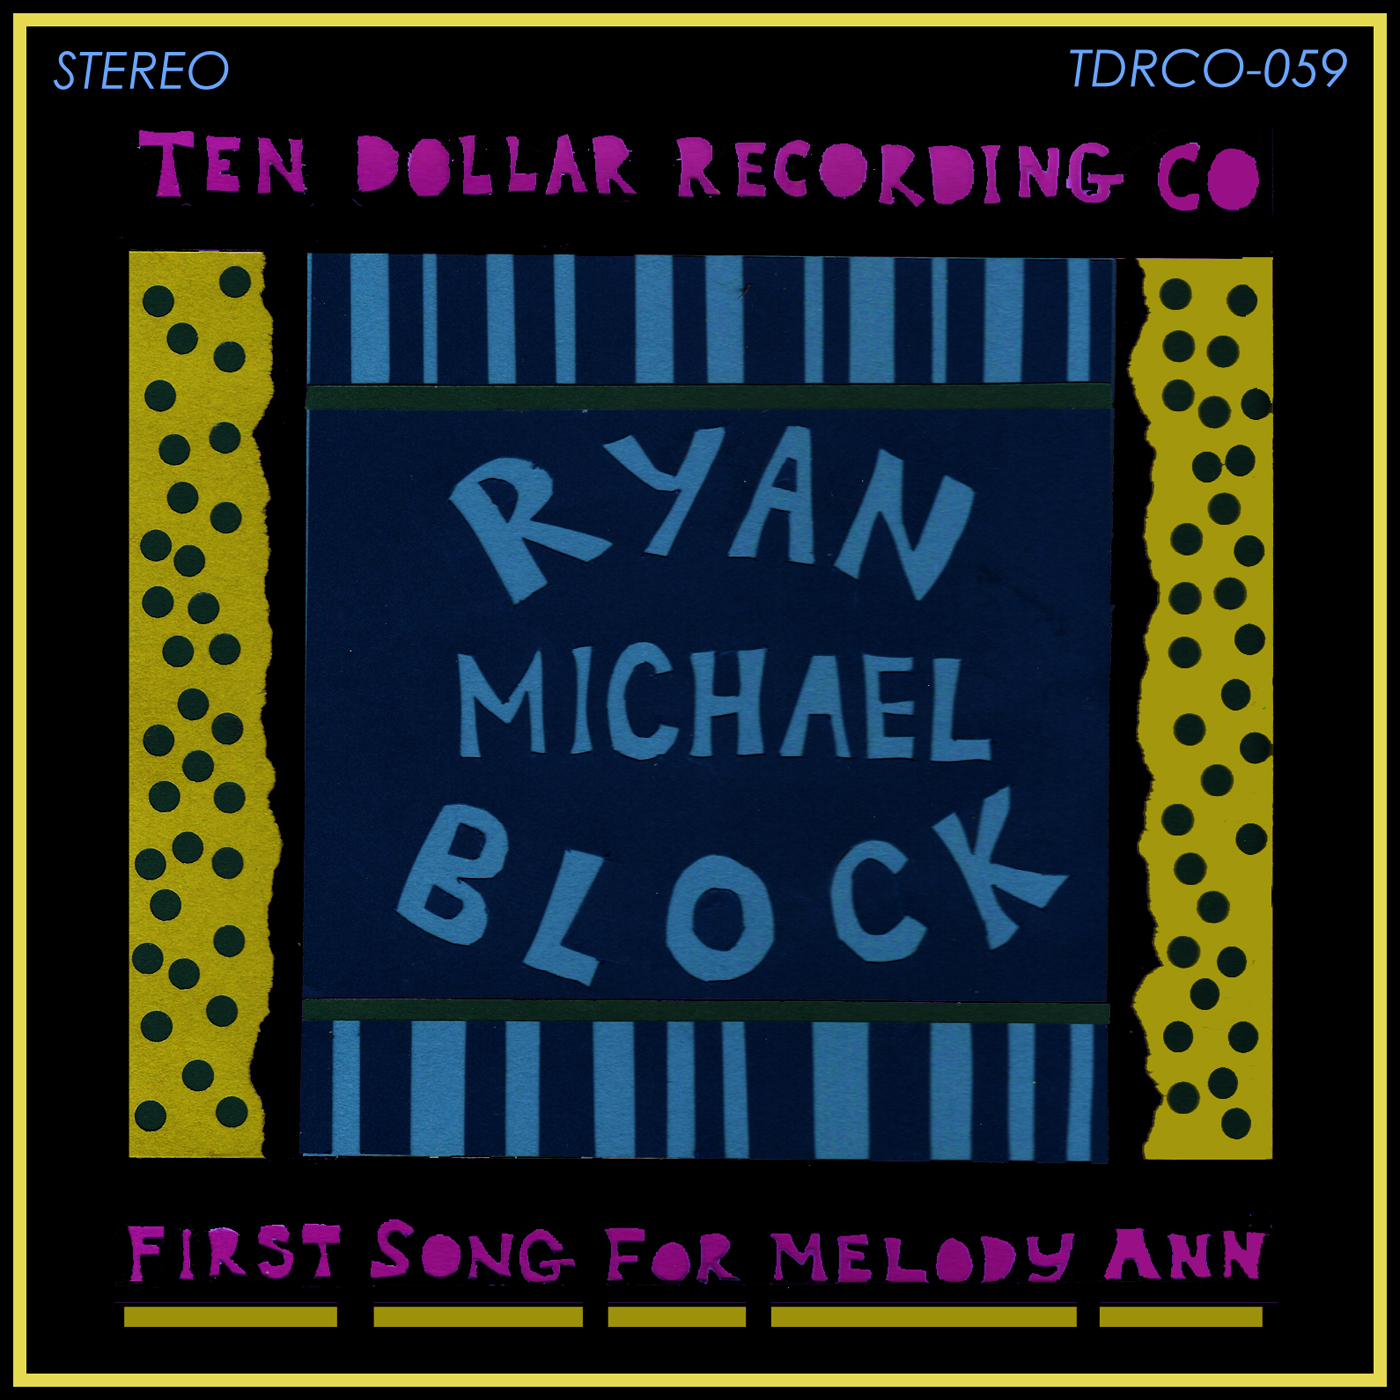 Ryan Michael Block - First Song For Melody Ann (Single)